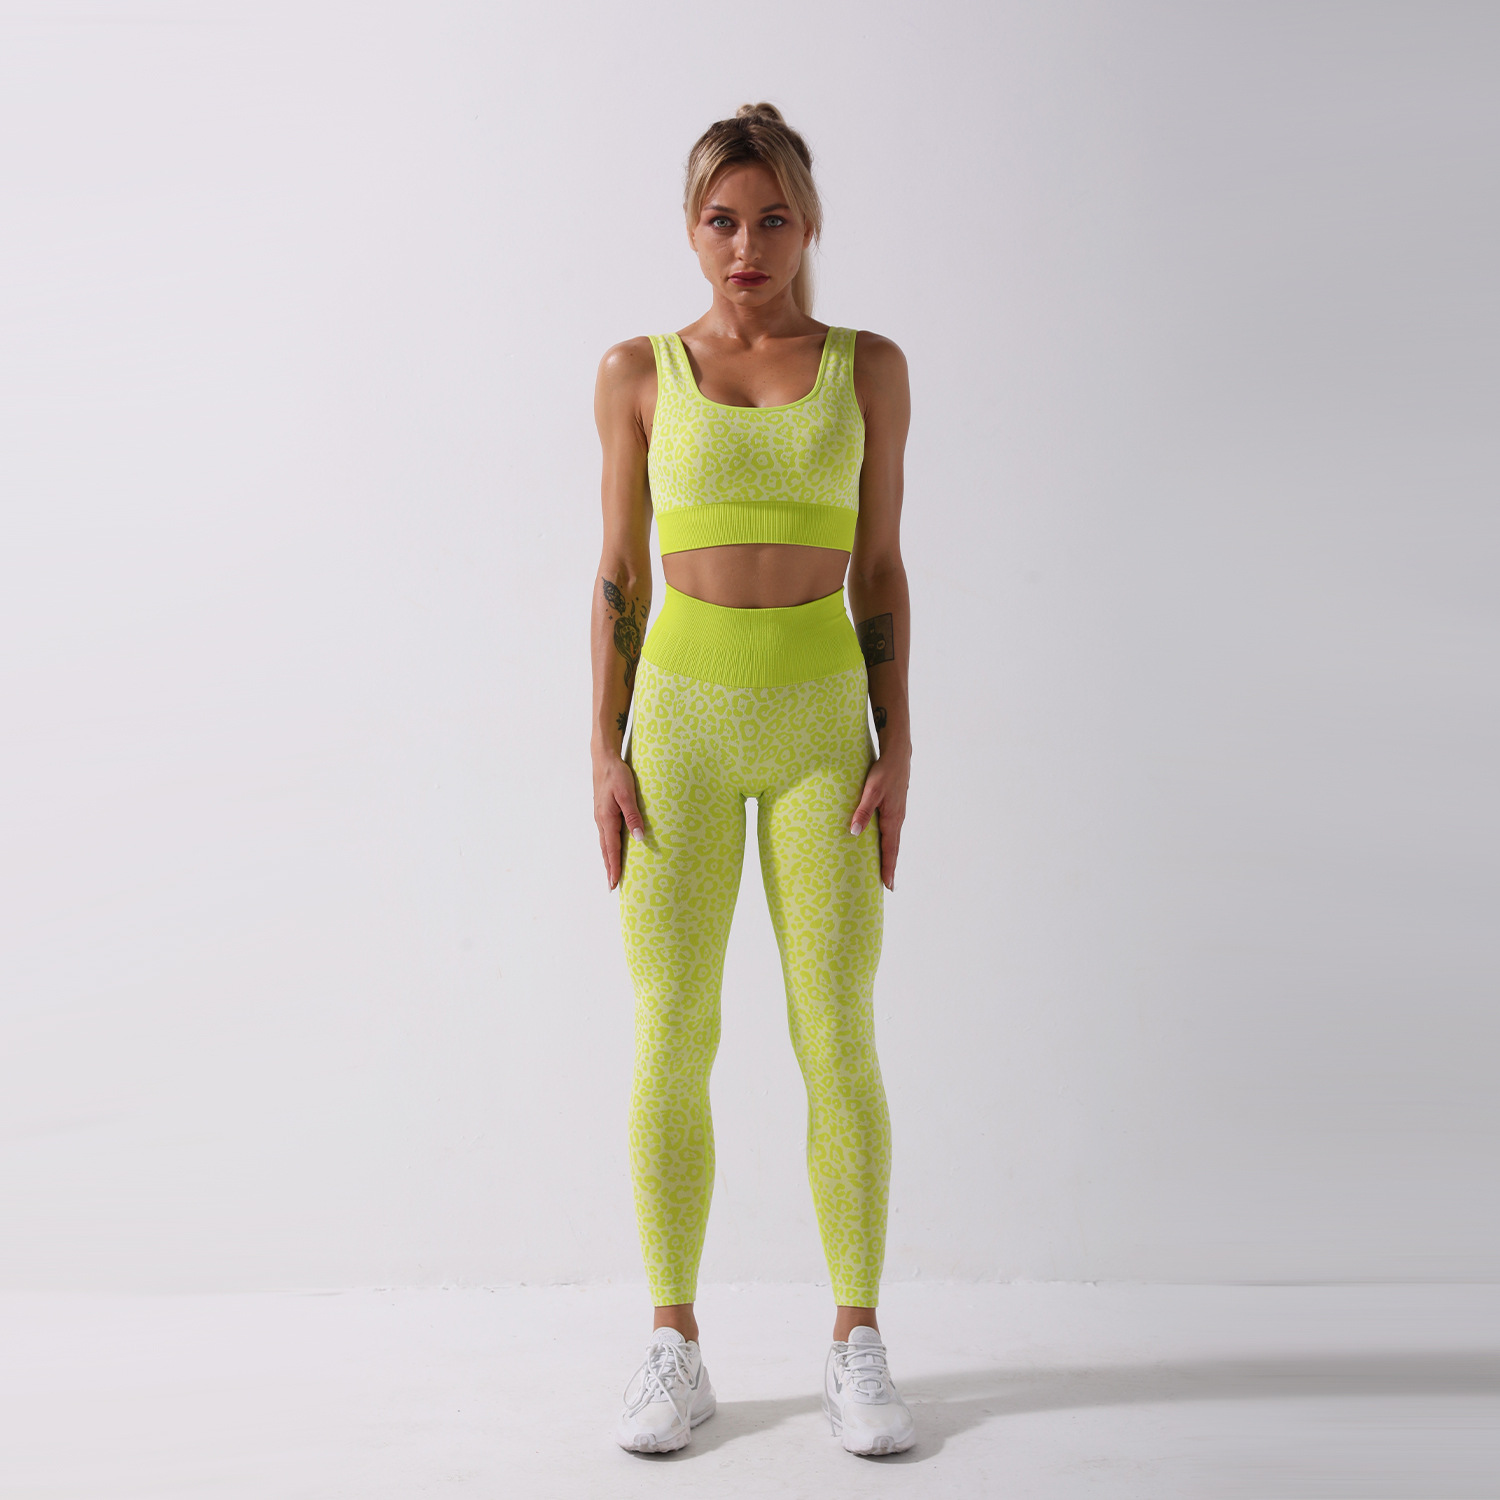 active wear yoga set (8)